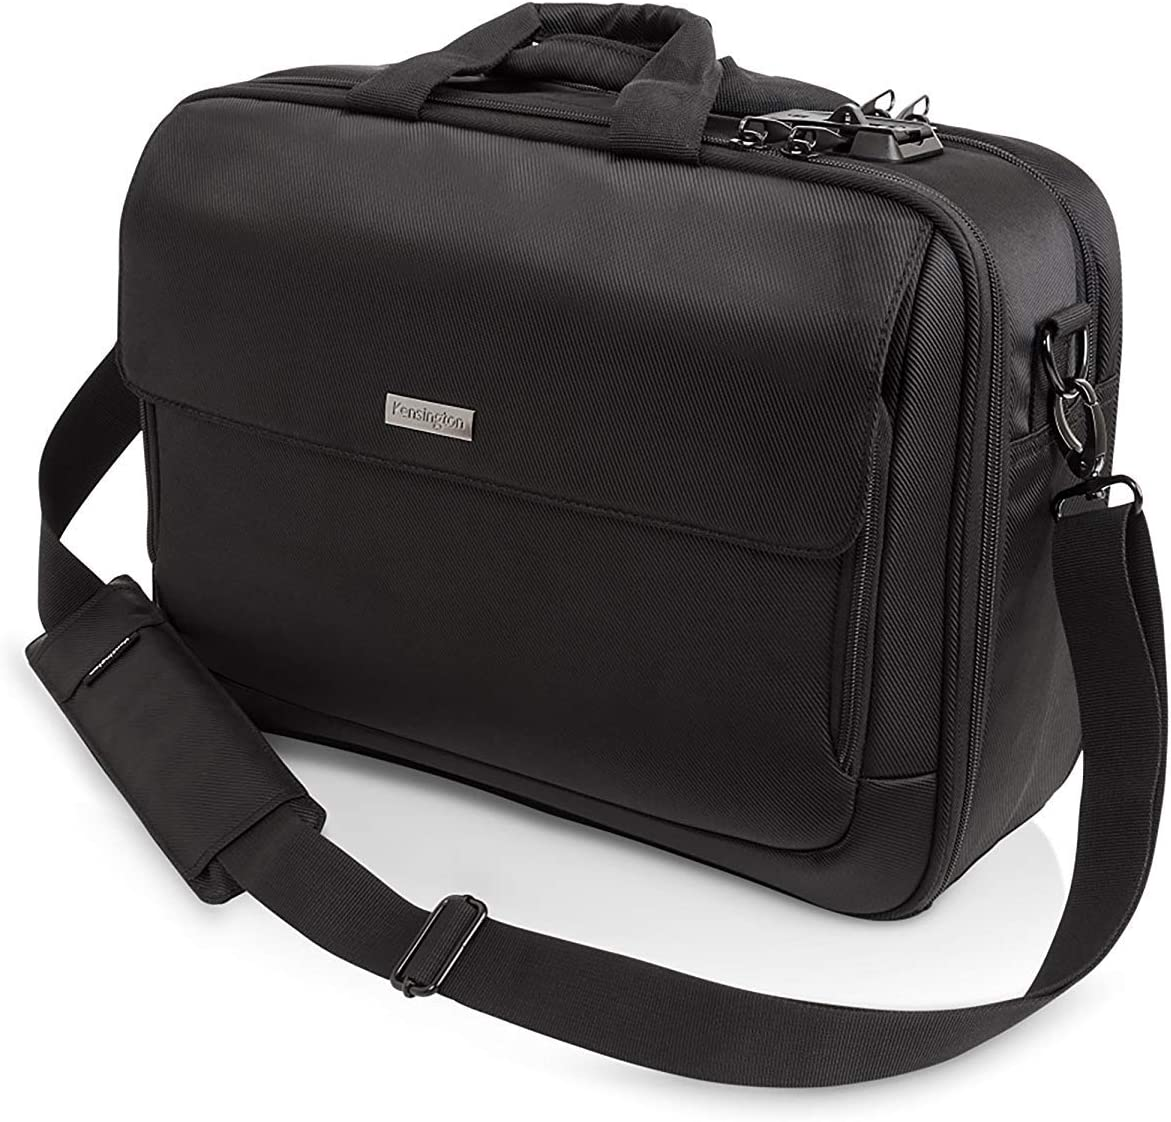 "Kensington SecureTrek 15"" Lockable Anti-Theft Laptop Briefcase (K98616WW)"